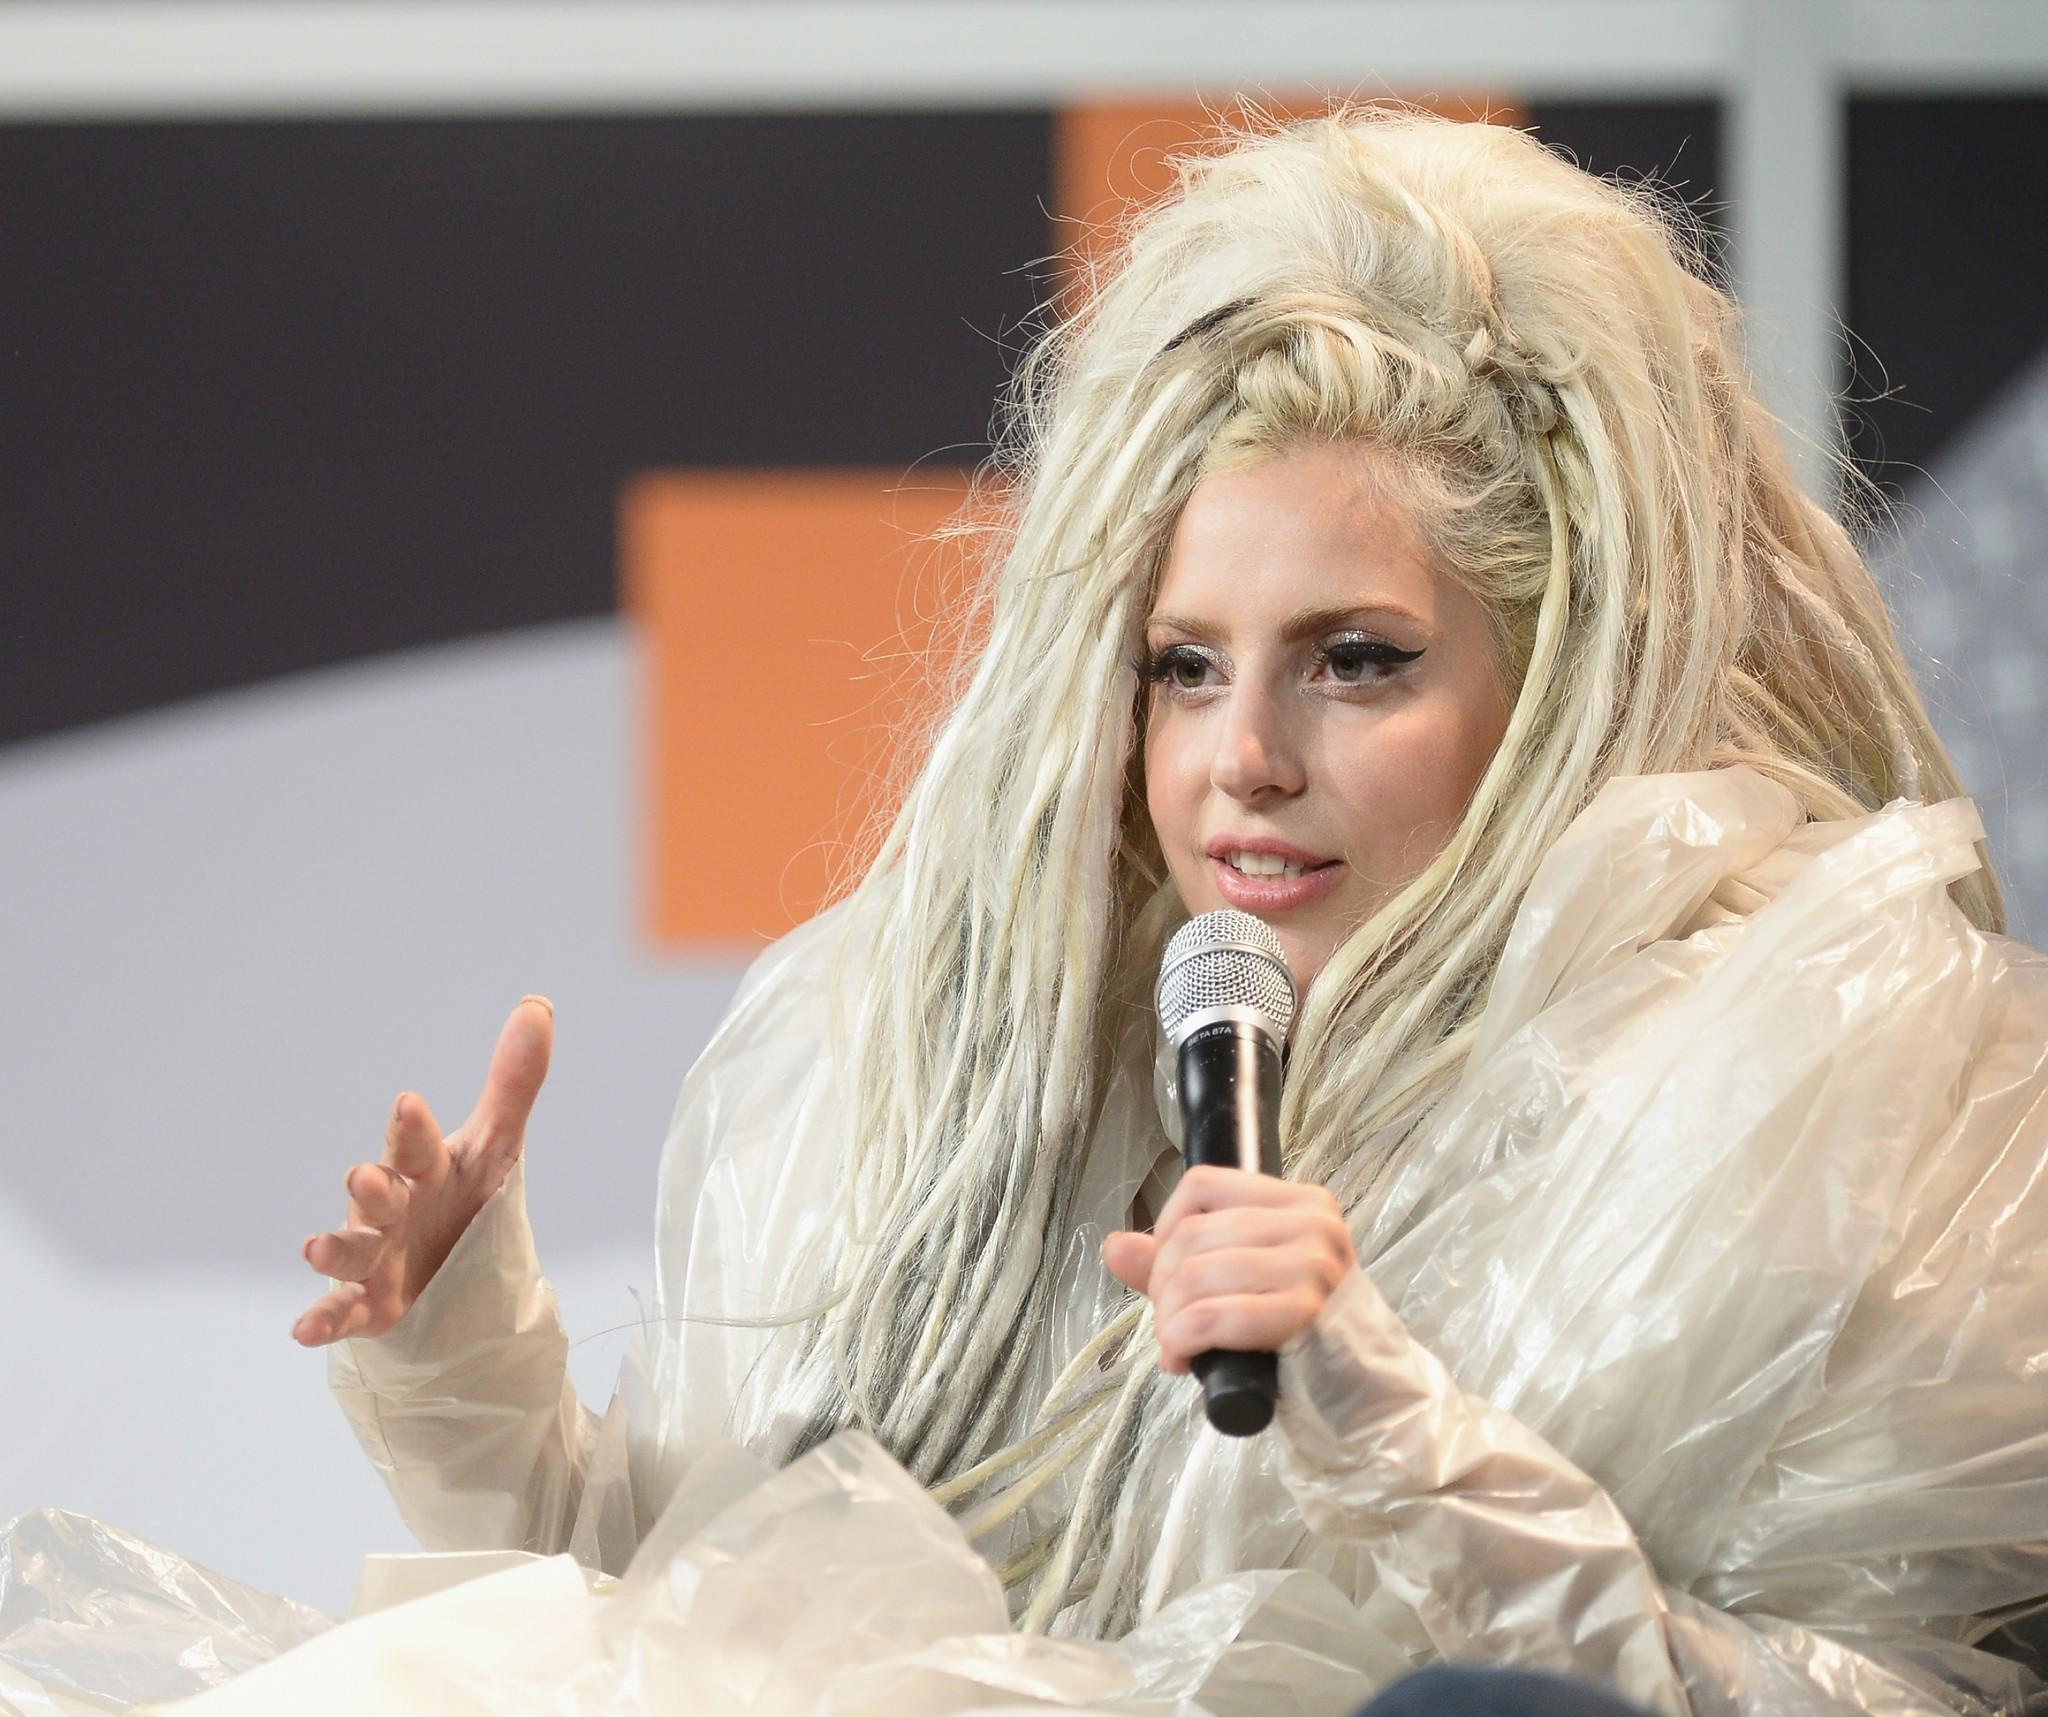 AUSTIN, TX - MARCH 14: Musician Lady Gaga speaks at the 2014 SXSW Music, Film   Interactive Festival at the Hilton on March 14, 2014 in Austin, Texas.